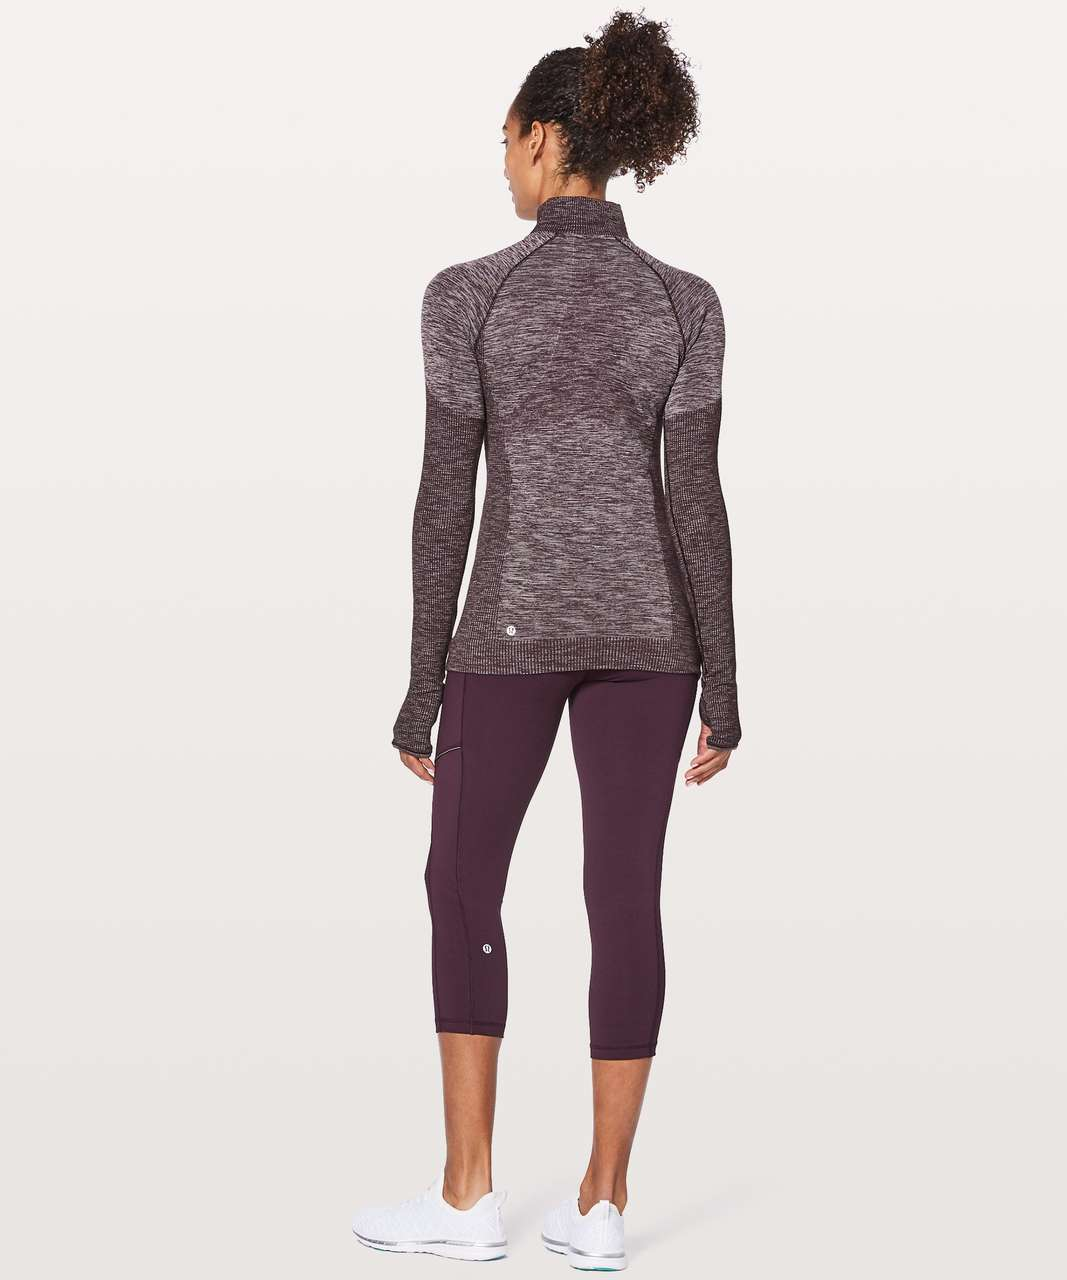 Lululemon Swiftly Wool 1/2 Zip - Black Cherry / White